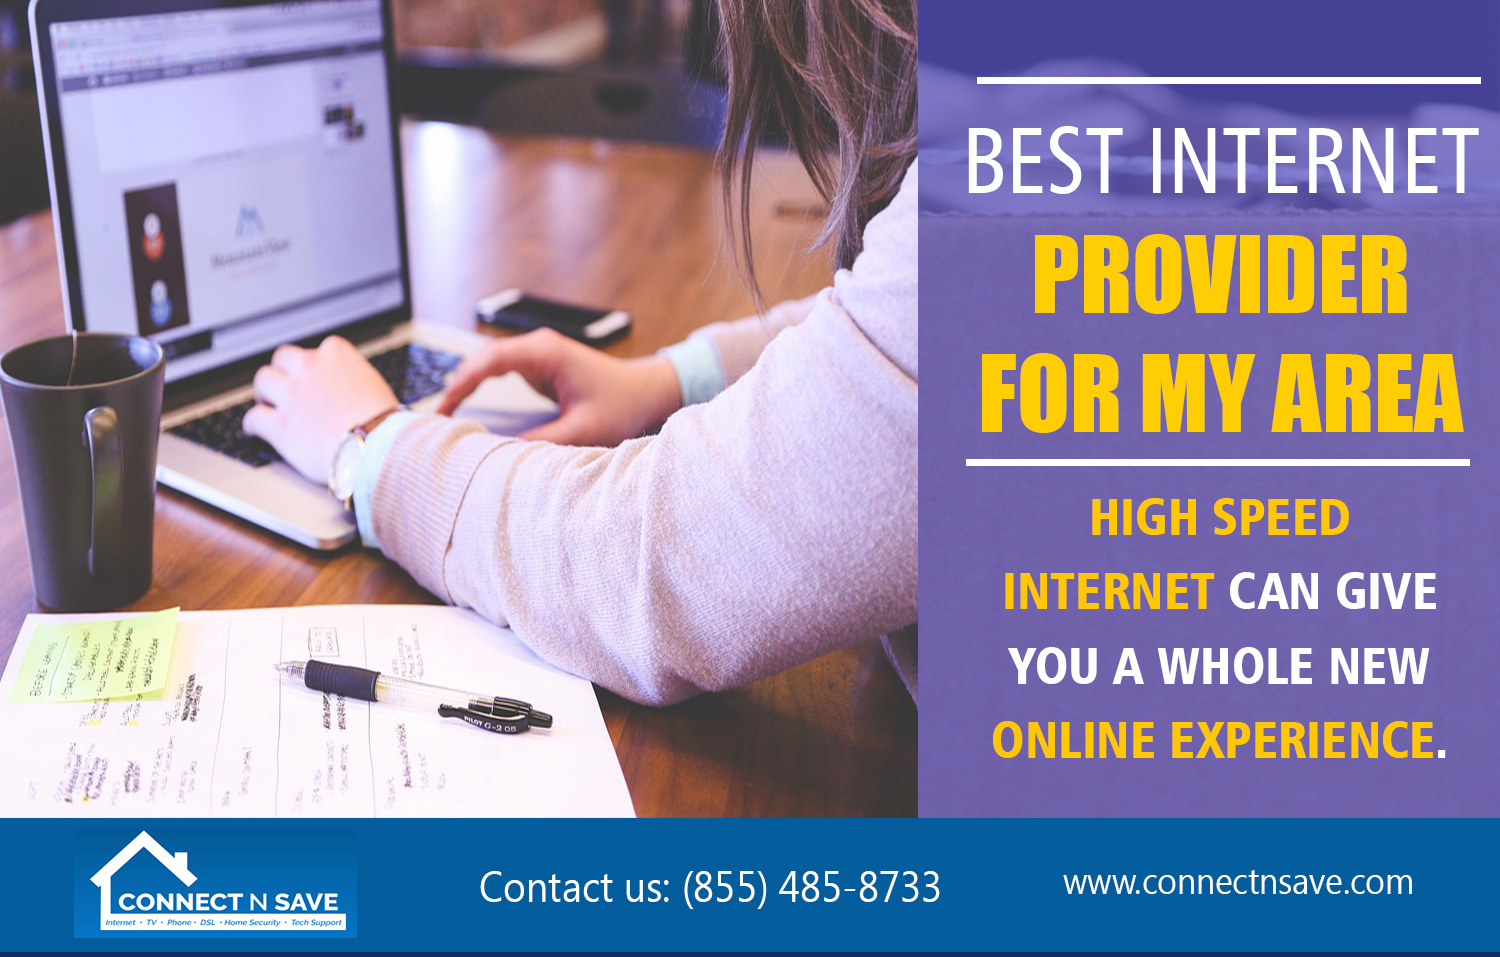 Cable Internet Providers In My Area >> Best Internet Provider For My Area - Social Social Social | Social Social Social